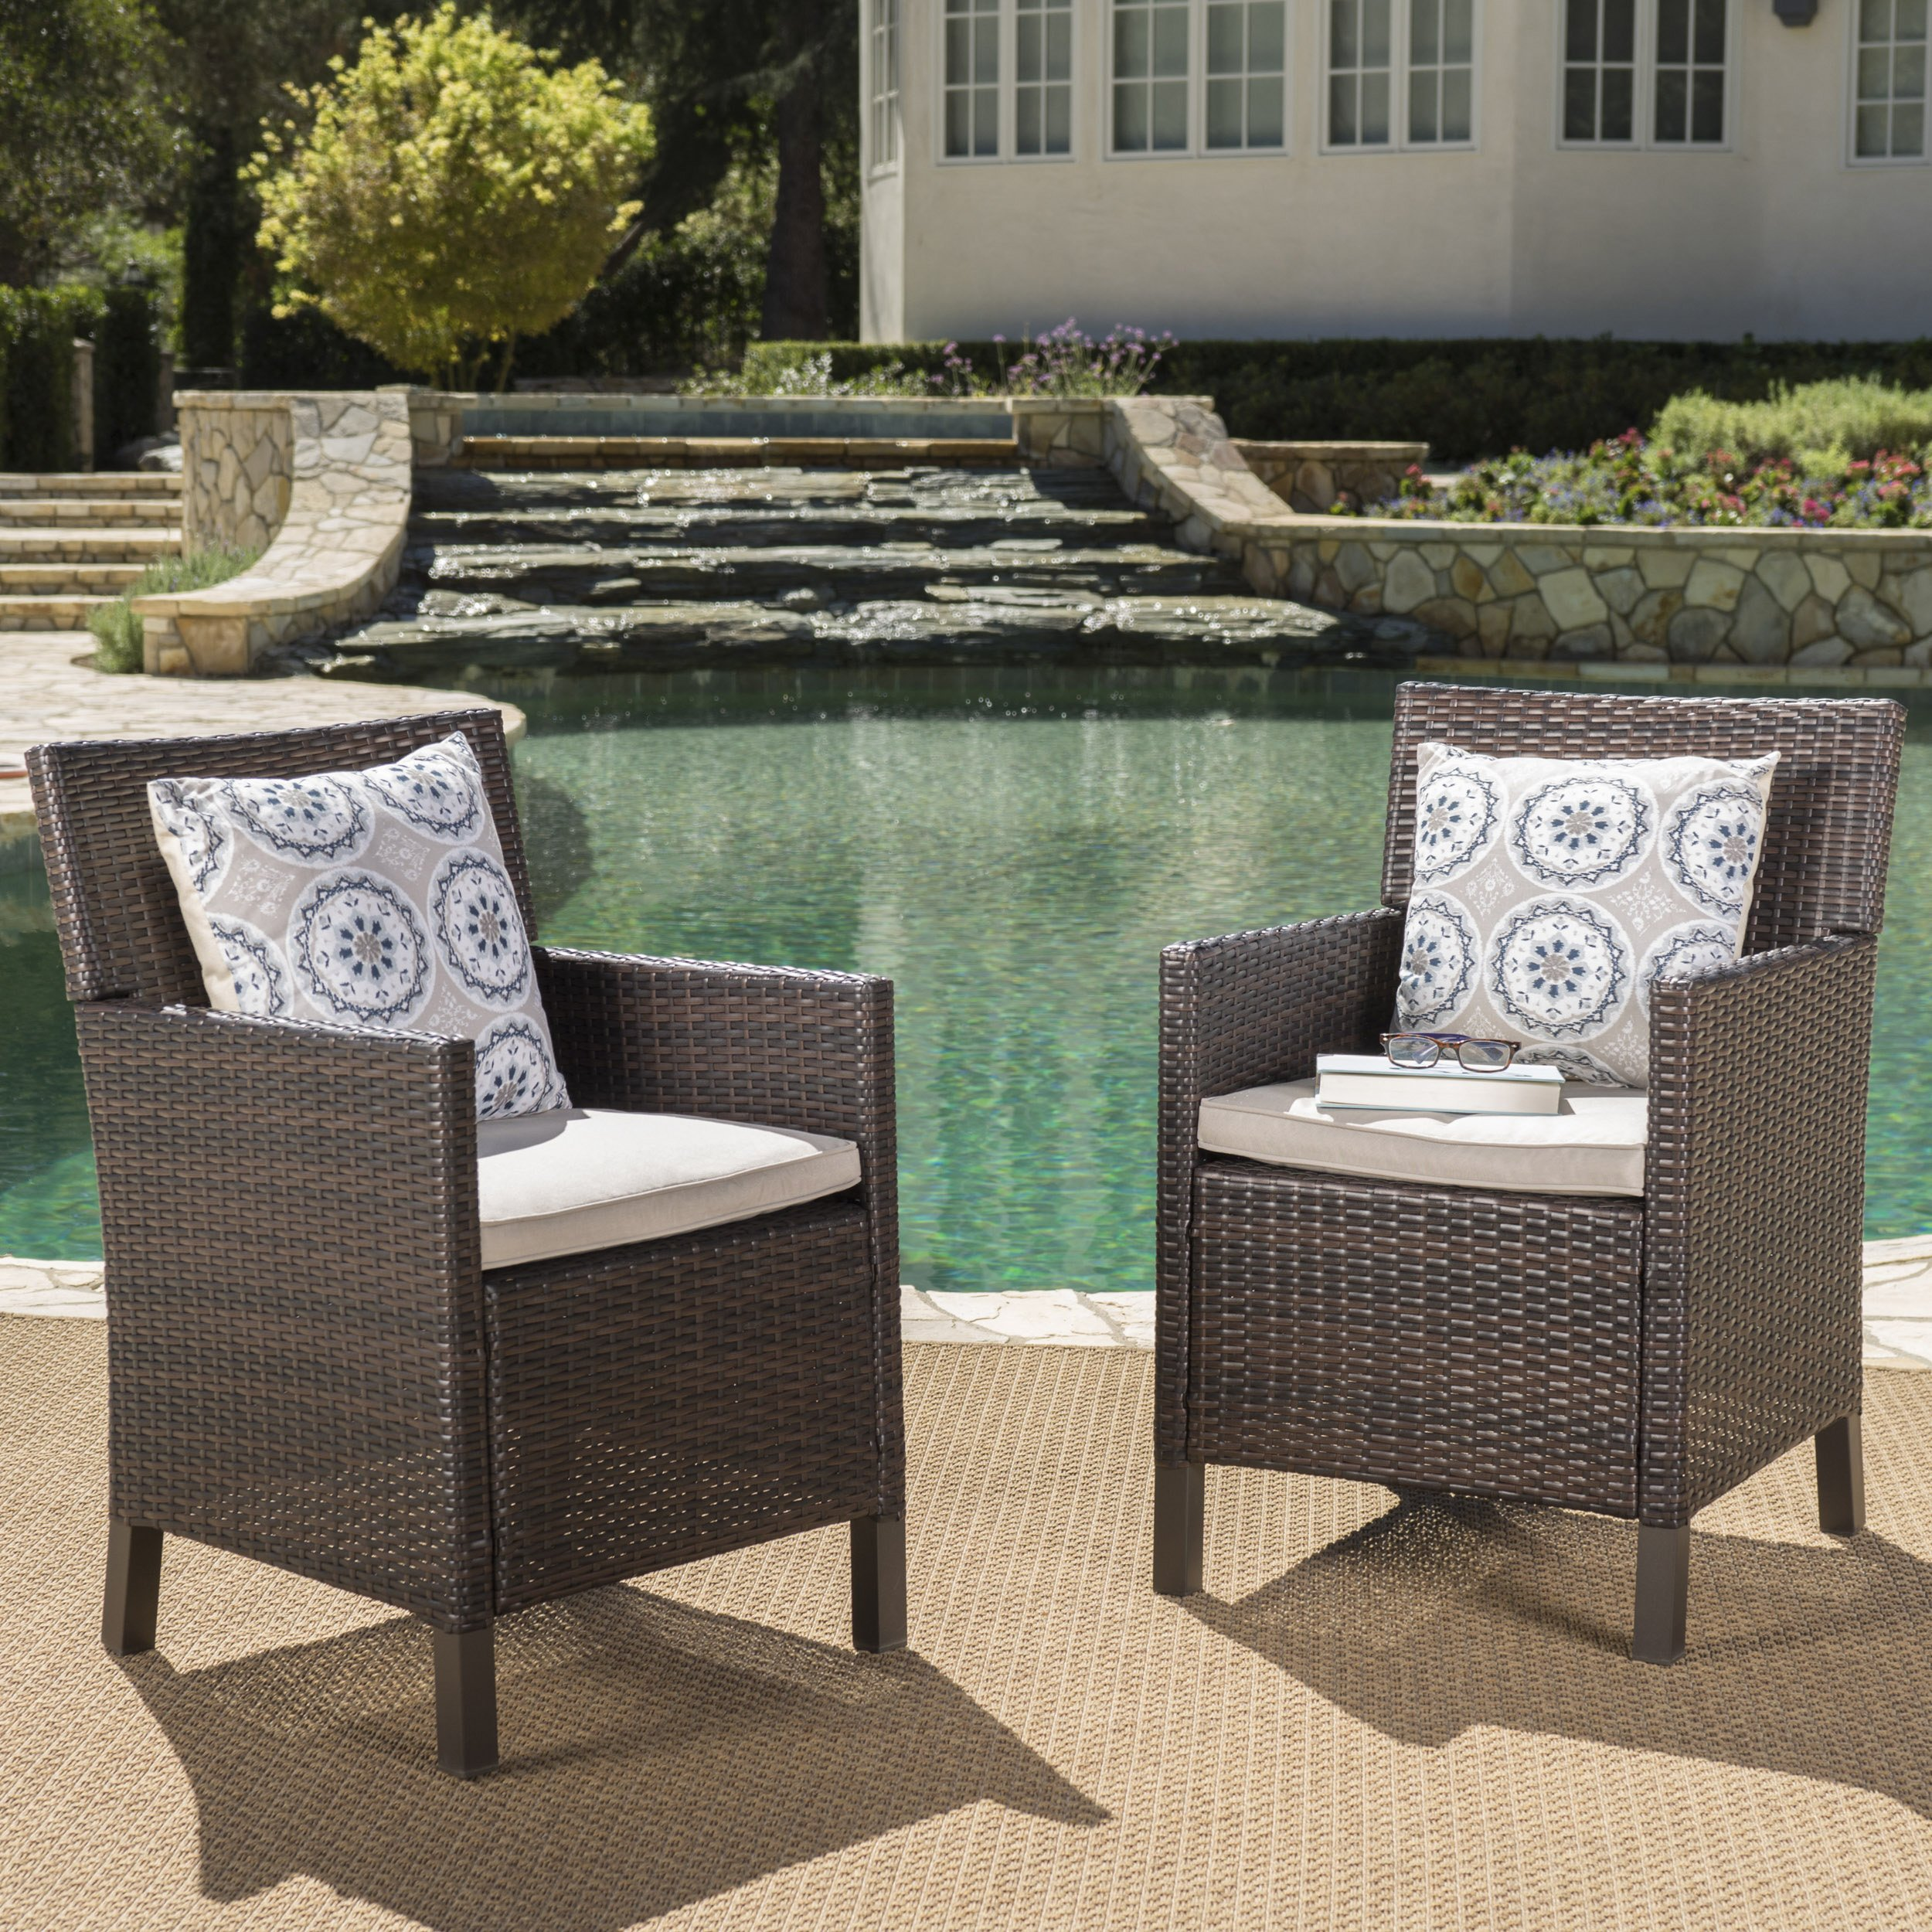 Cyrus Outdoor Wicker Dining Chairs with Water Resistant Cushions (Set of 2) (Multibrown/Light Brown)